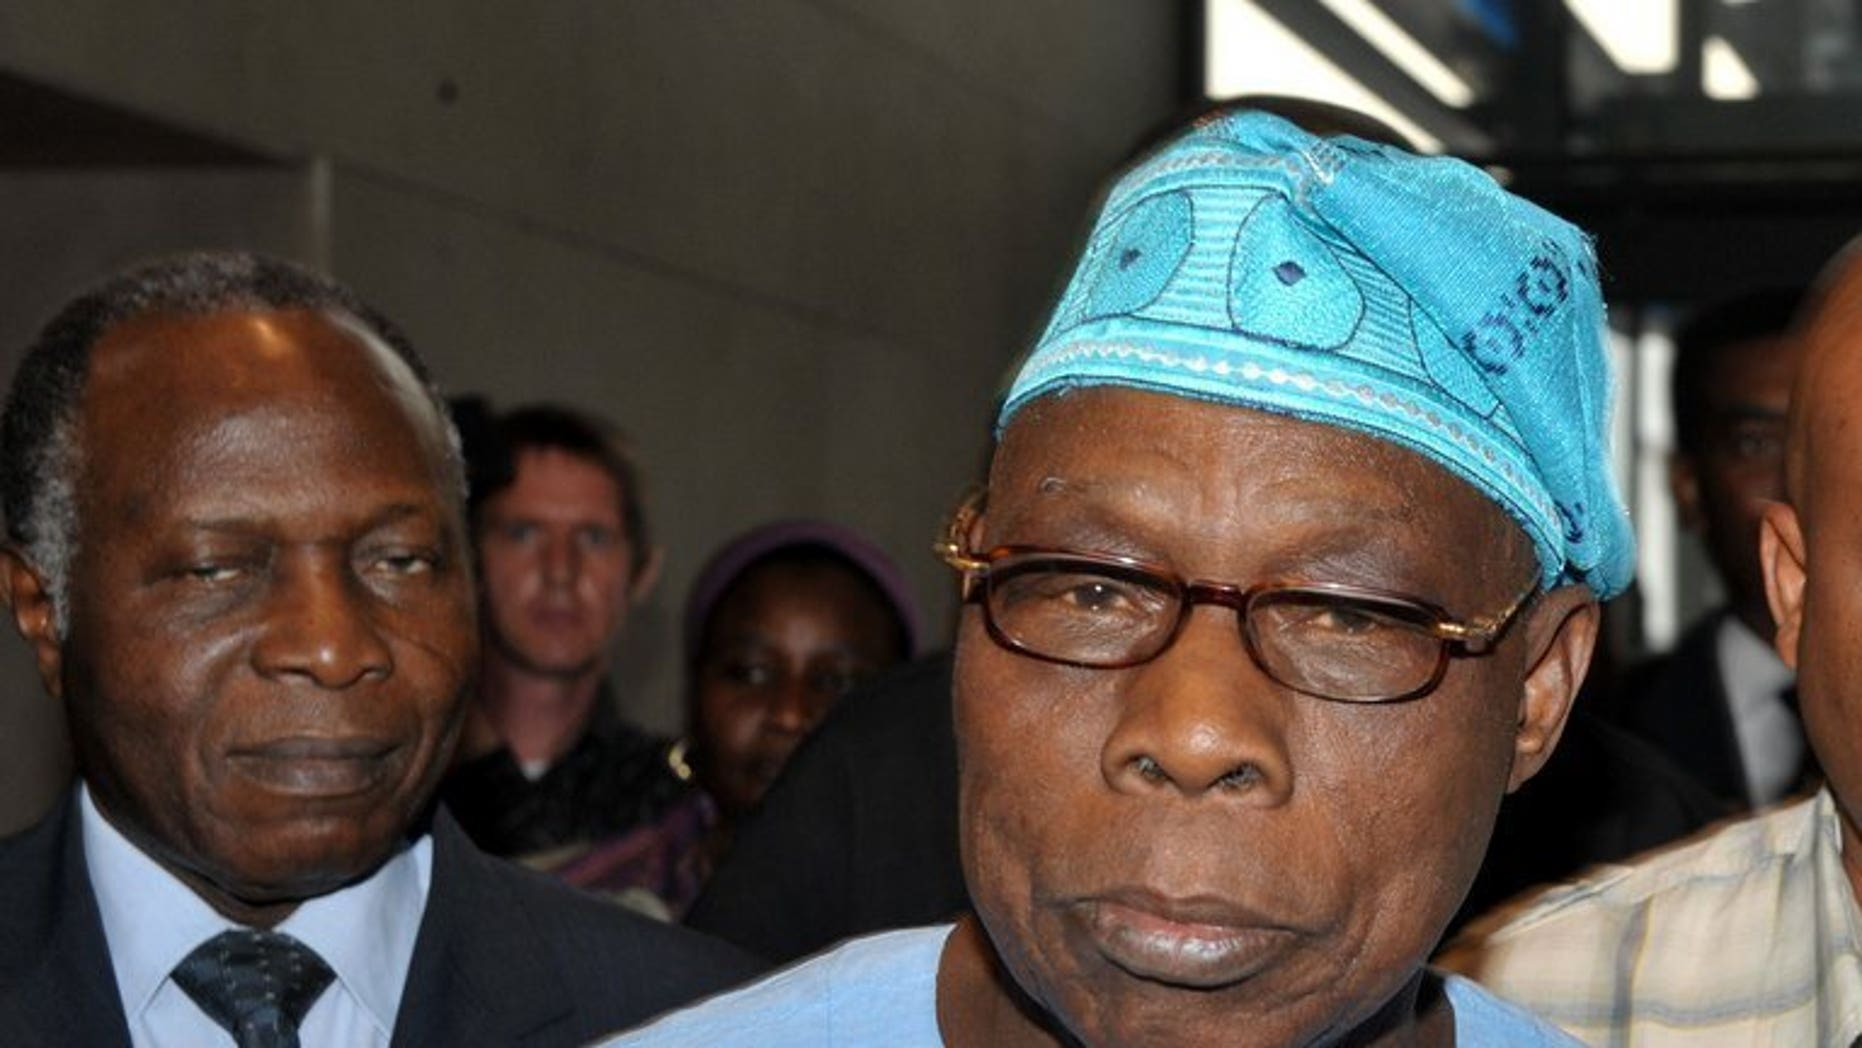 Former Nigerian president and head of a joint mission launched by the African Union (AU) and the Economic Community of West African States (ECOWAS) Olusegun Obasanjo (R) pictured in Dakar on Feburary 25, 2012. Obasanjo will lead a team of 60 African Union monitors to Zimbabwe for the July 31 election, the organisation said Friday.